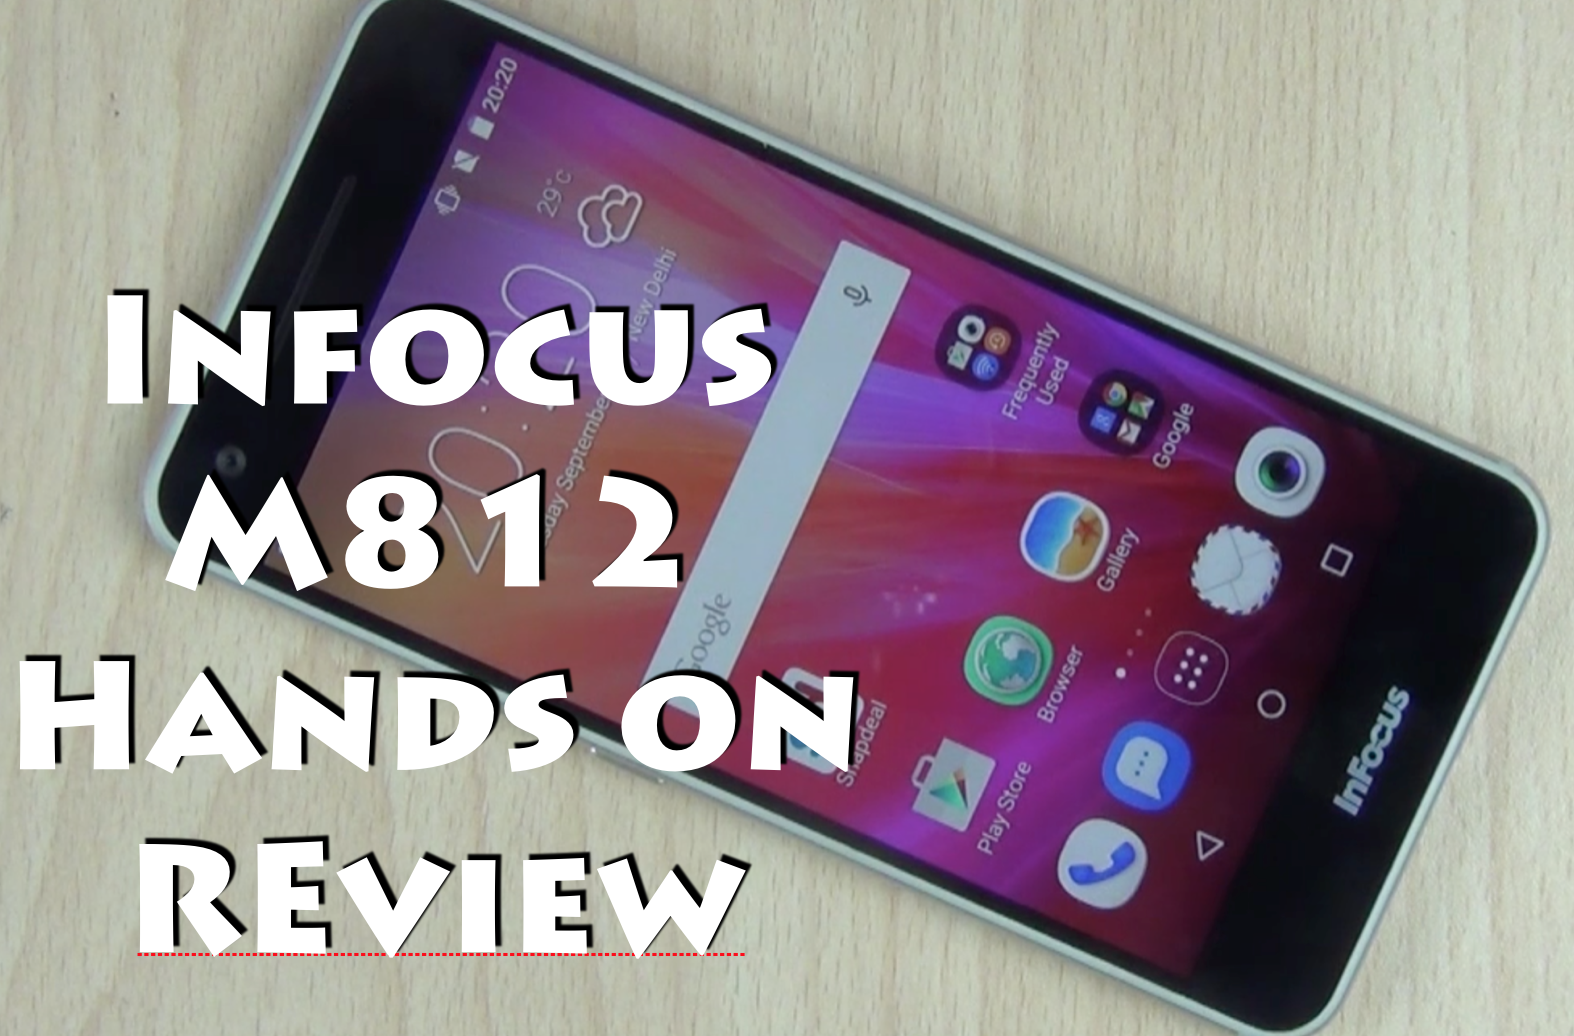 Infocus M812 Hands on Review